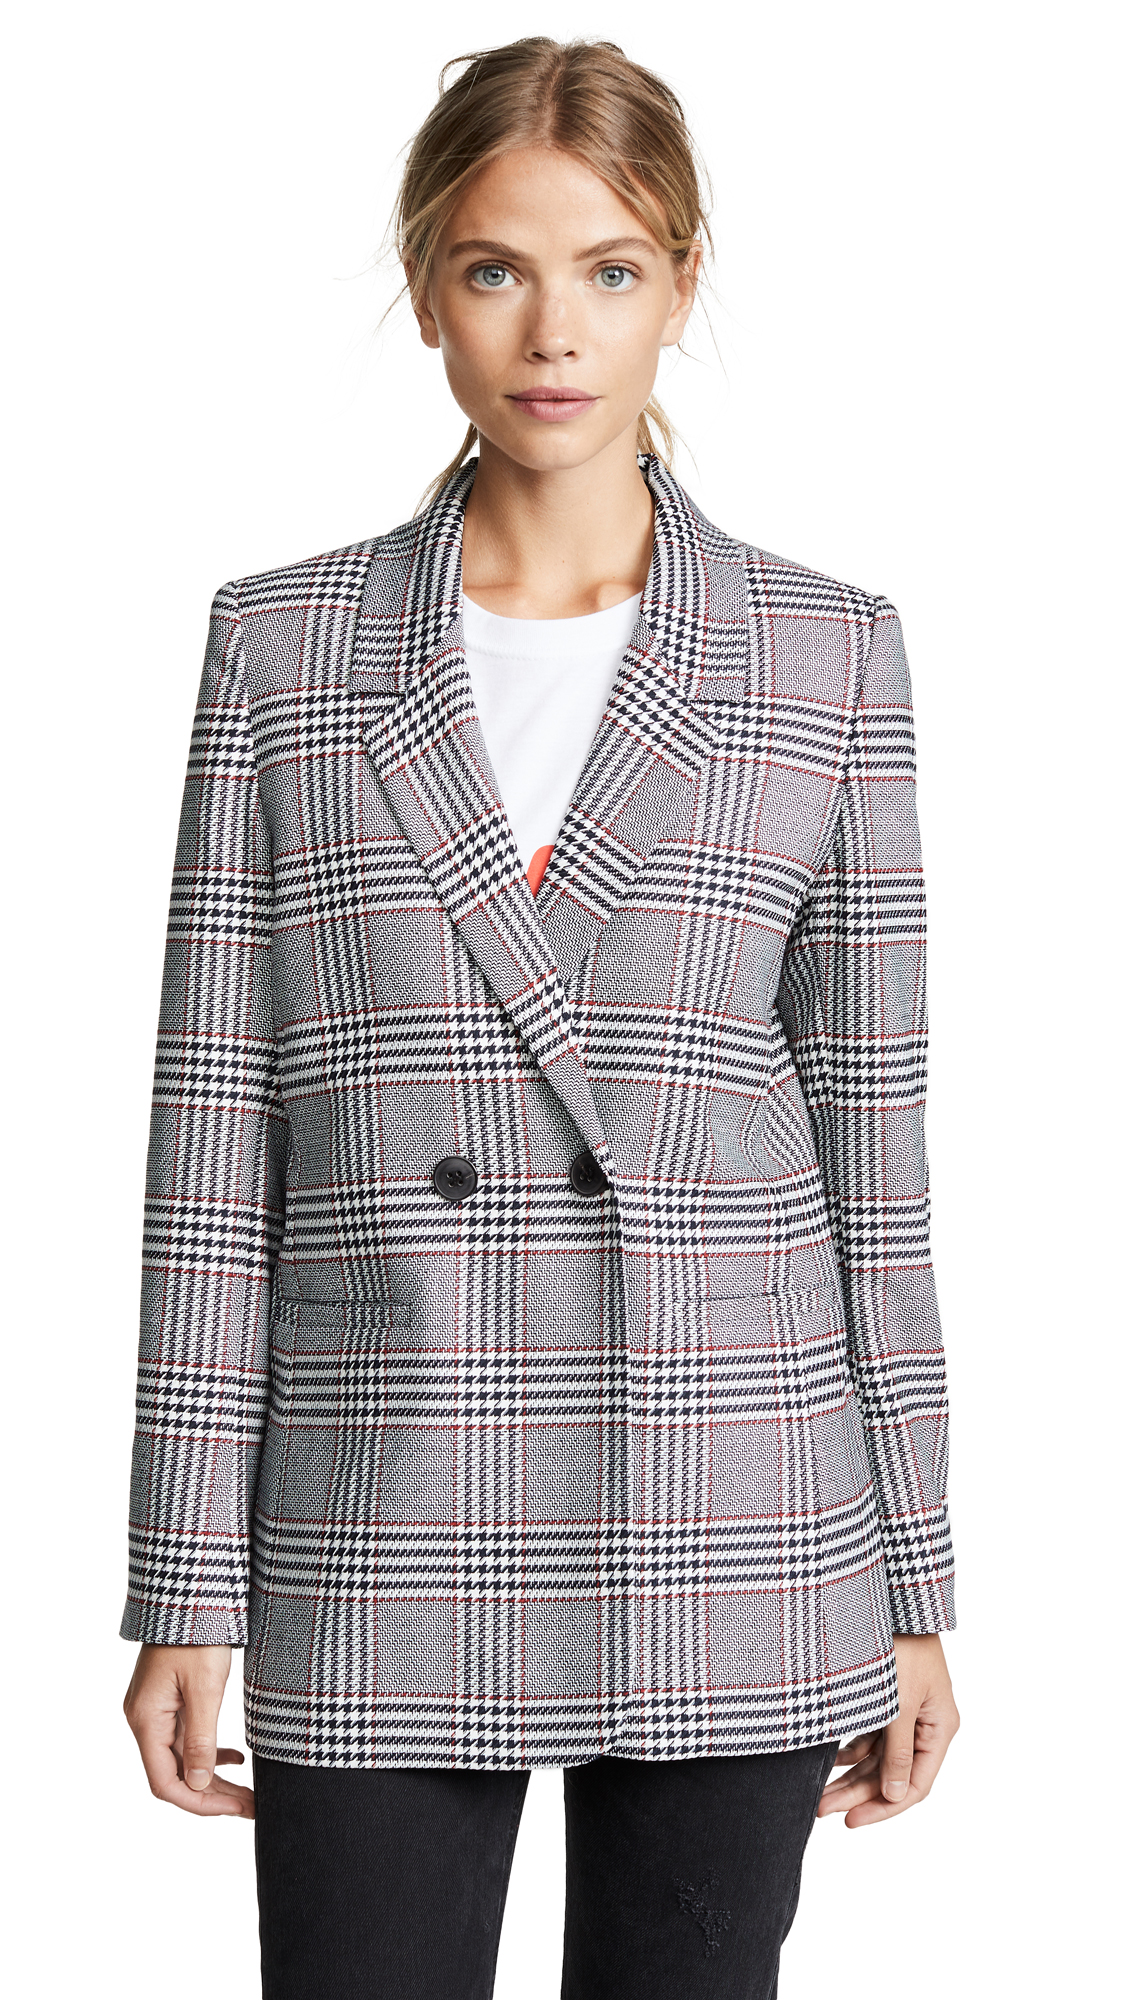 ANINE BING Madeleine Plaid Blazer in Black/White